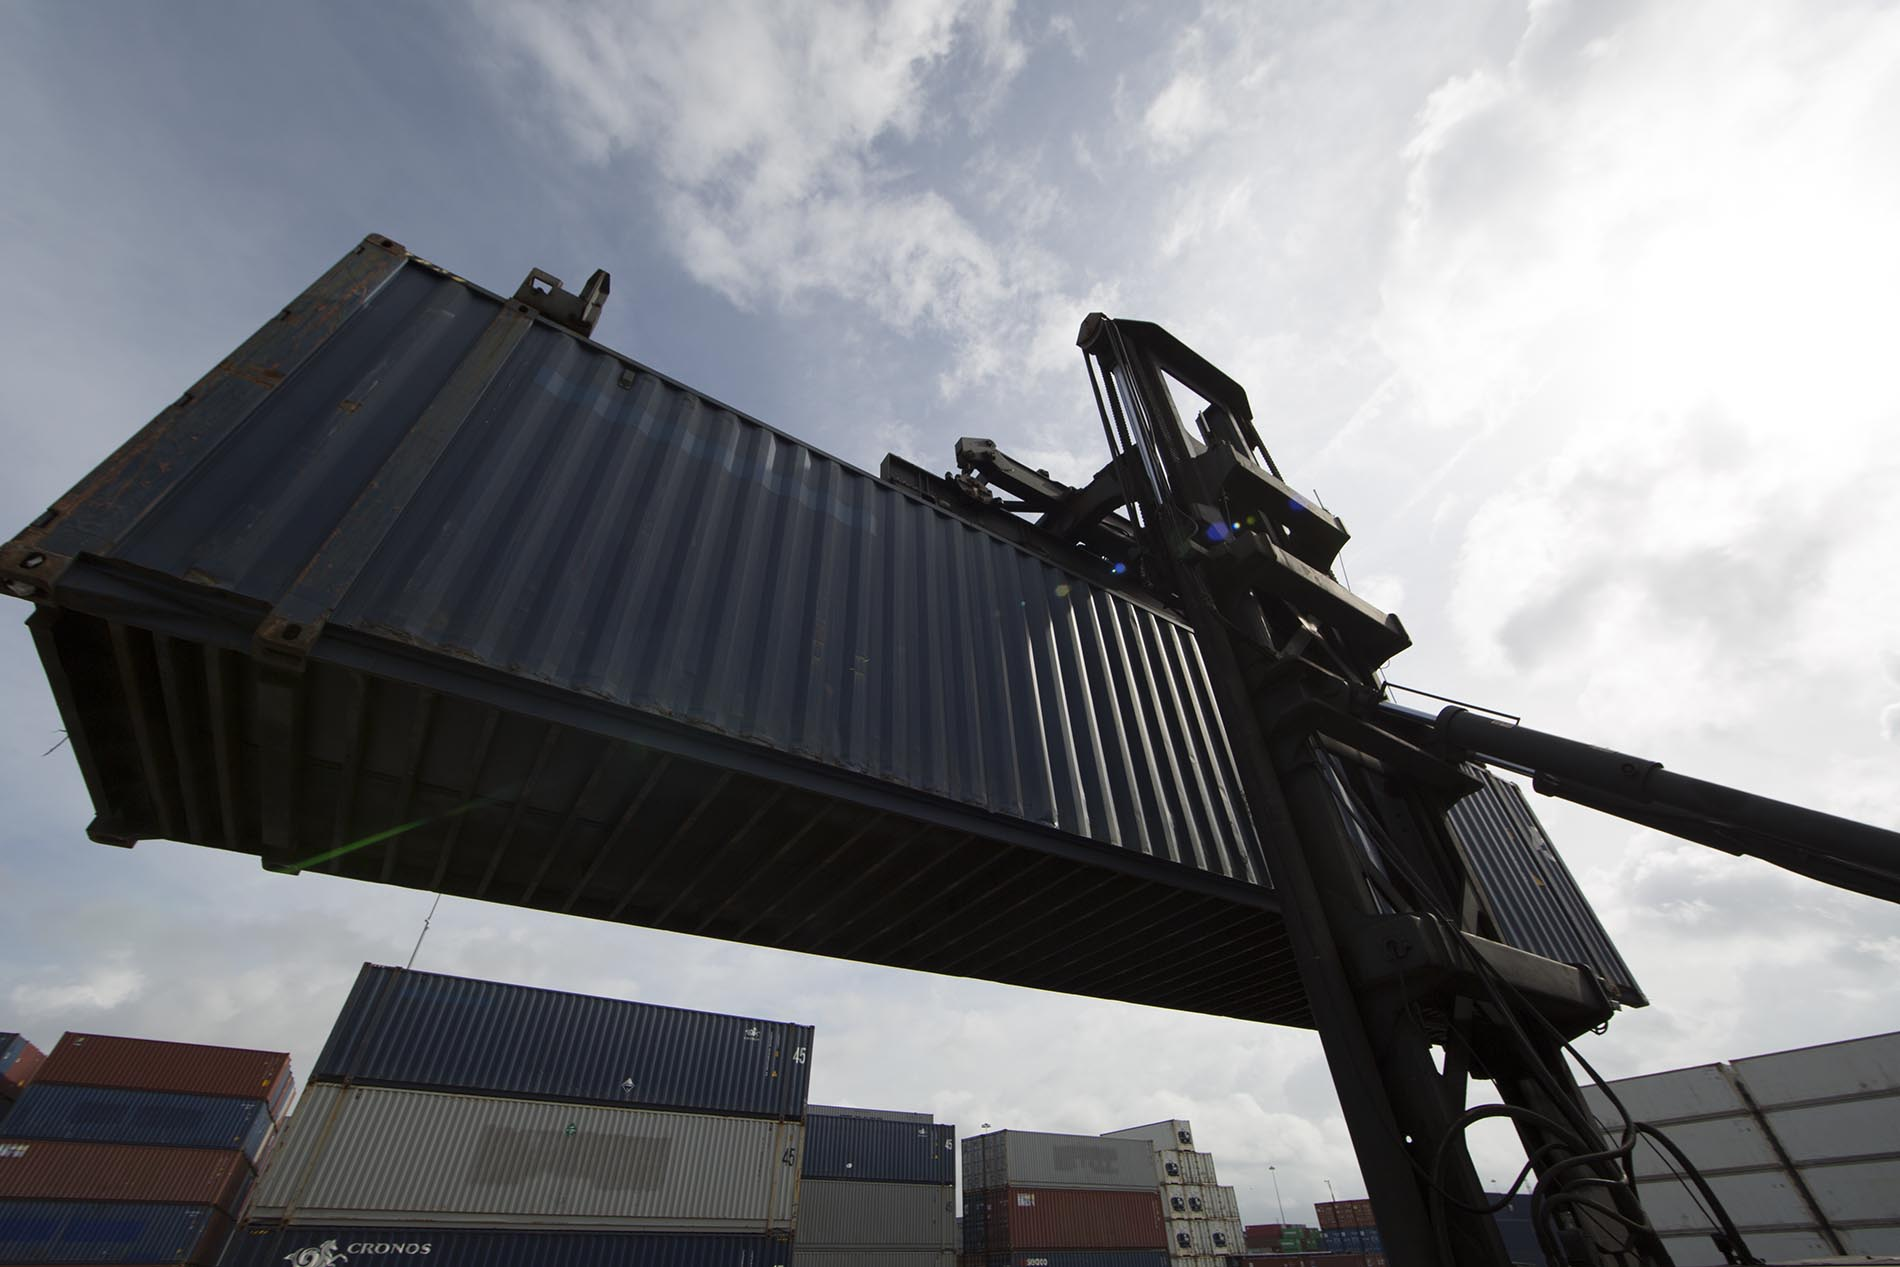 Containers on spreader lift